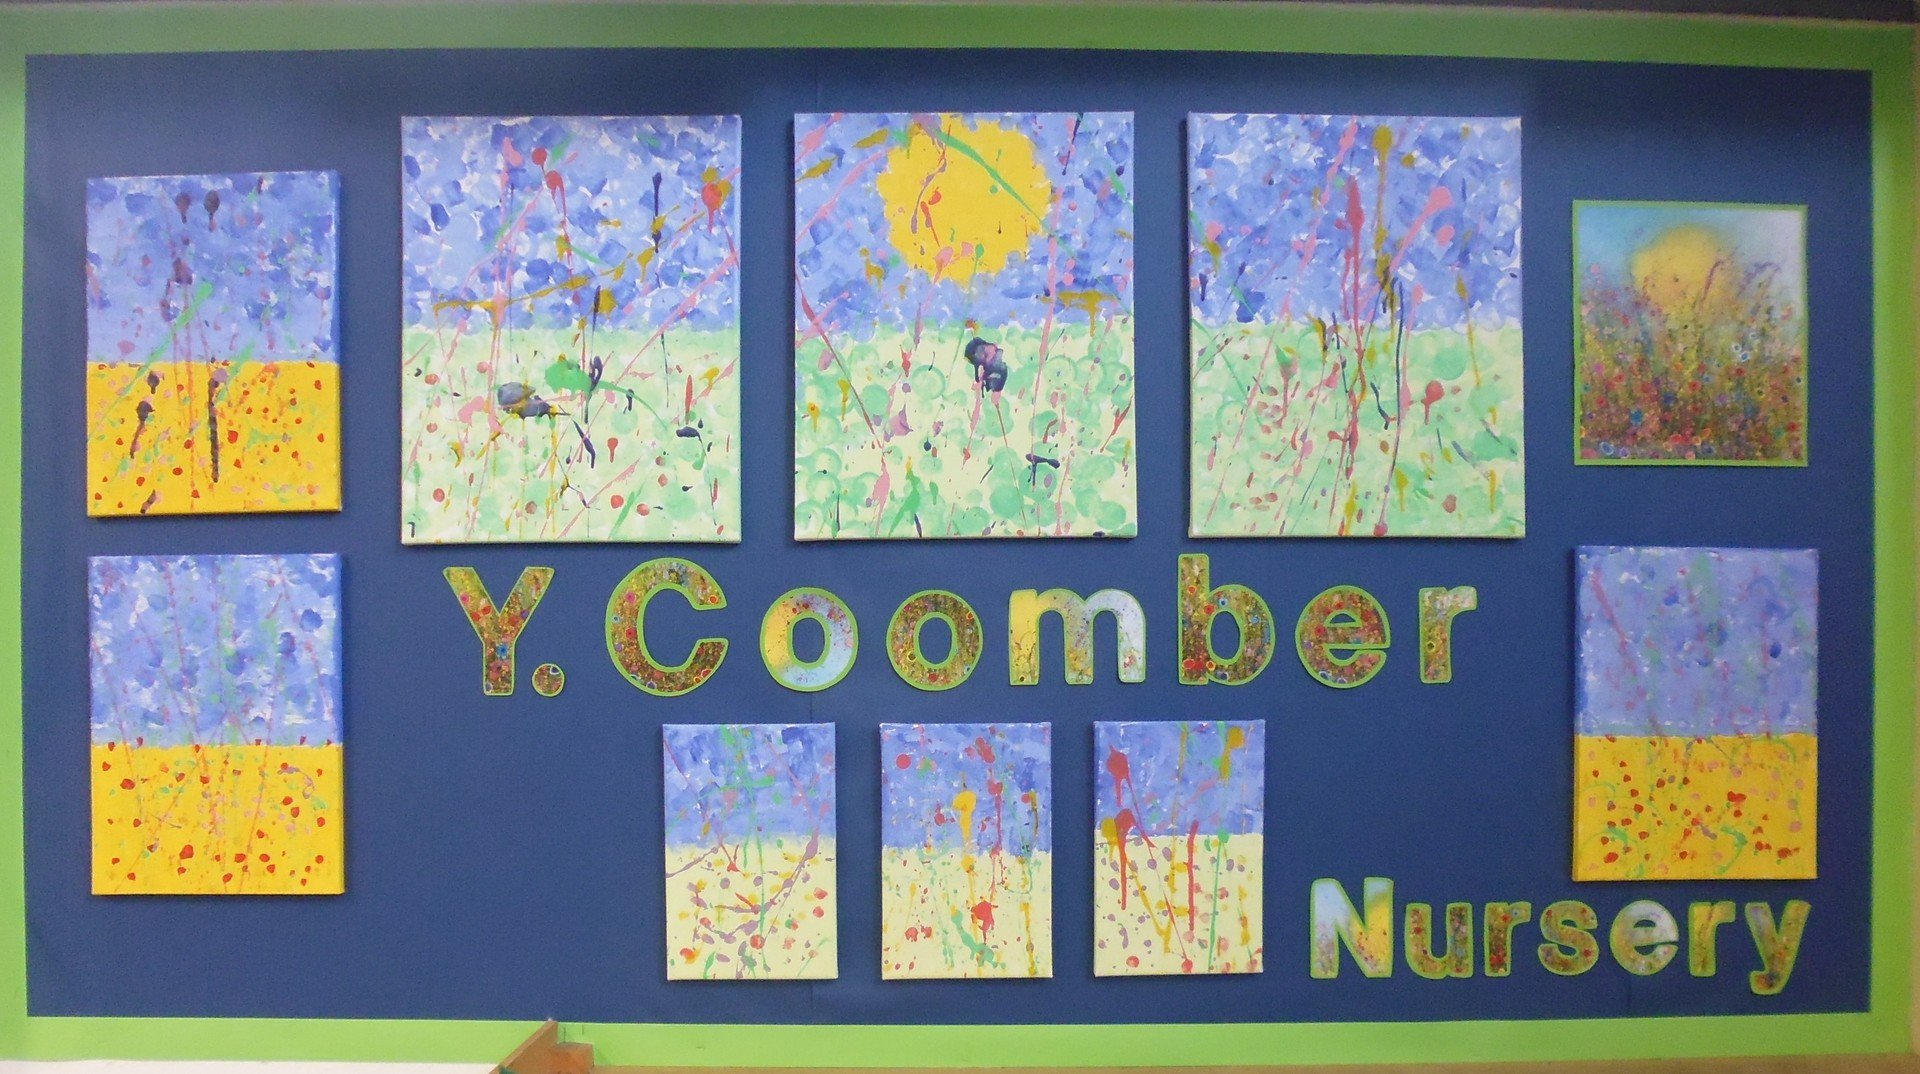 Nursery Artwork of Coomber